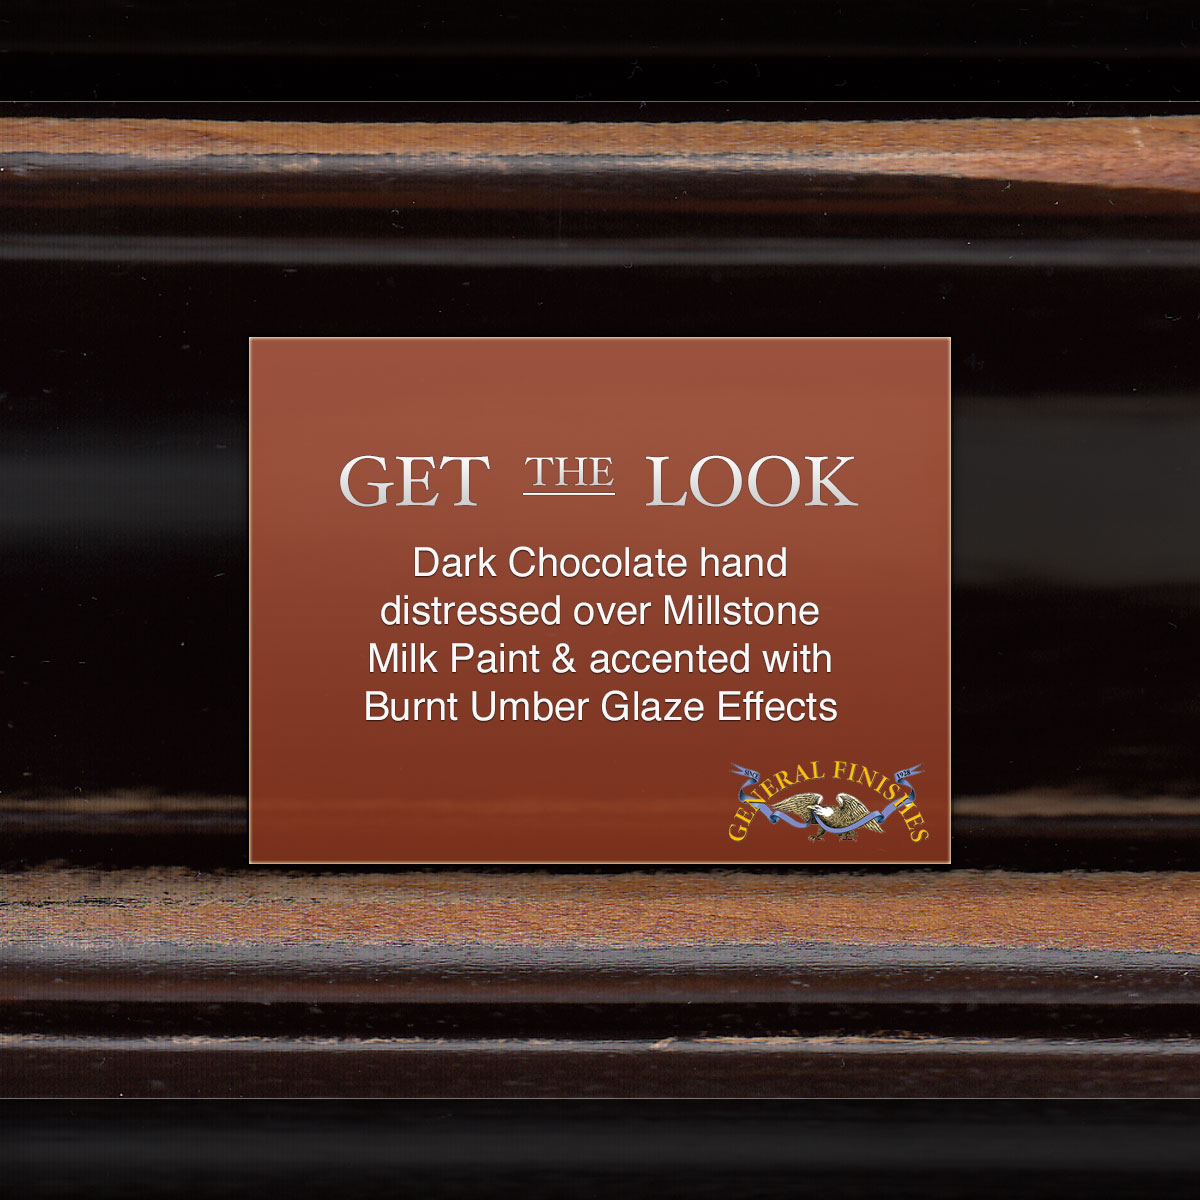 Get The Look Dark Chocolate handdistressed over